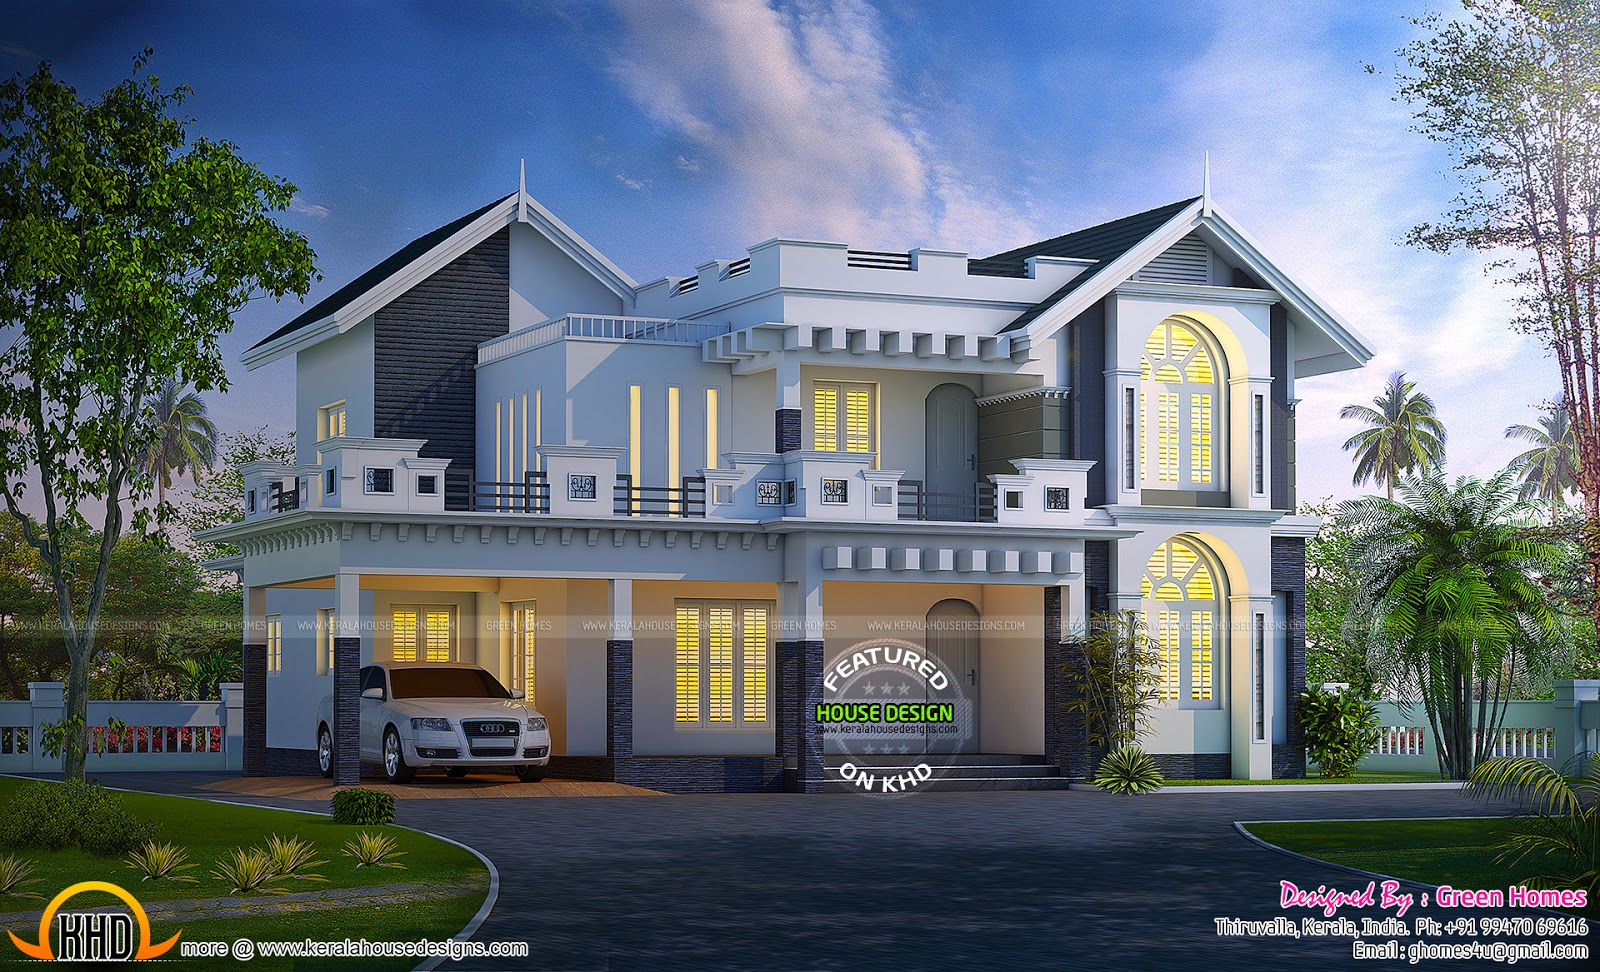 Awesome Western Model House Plan Kerala Home Design And Floor Plans